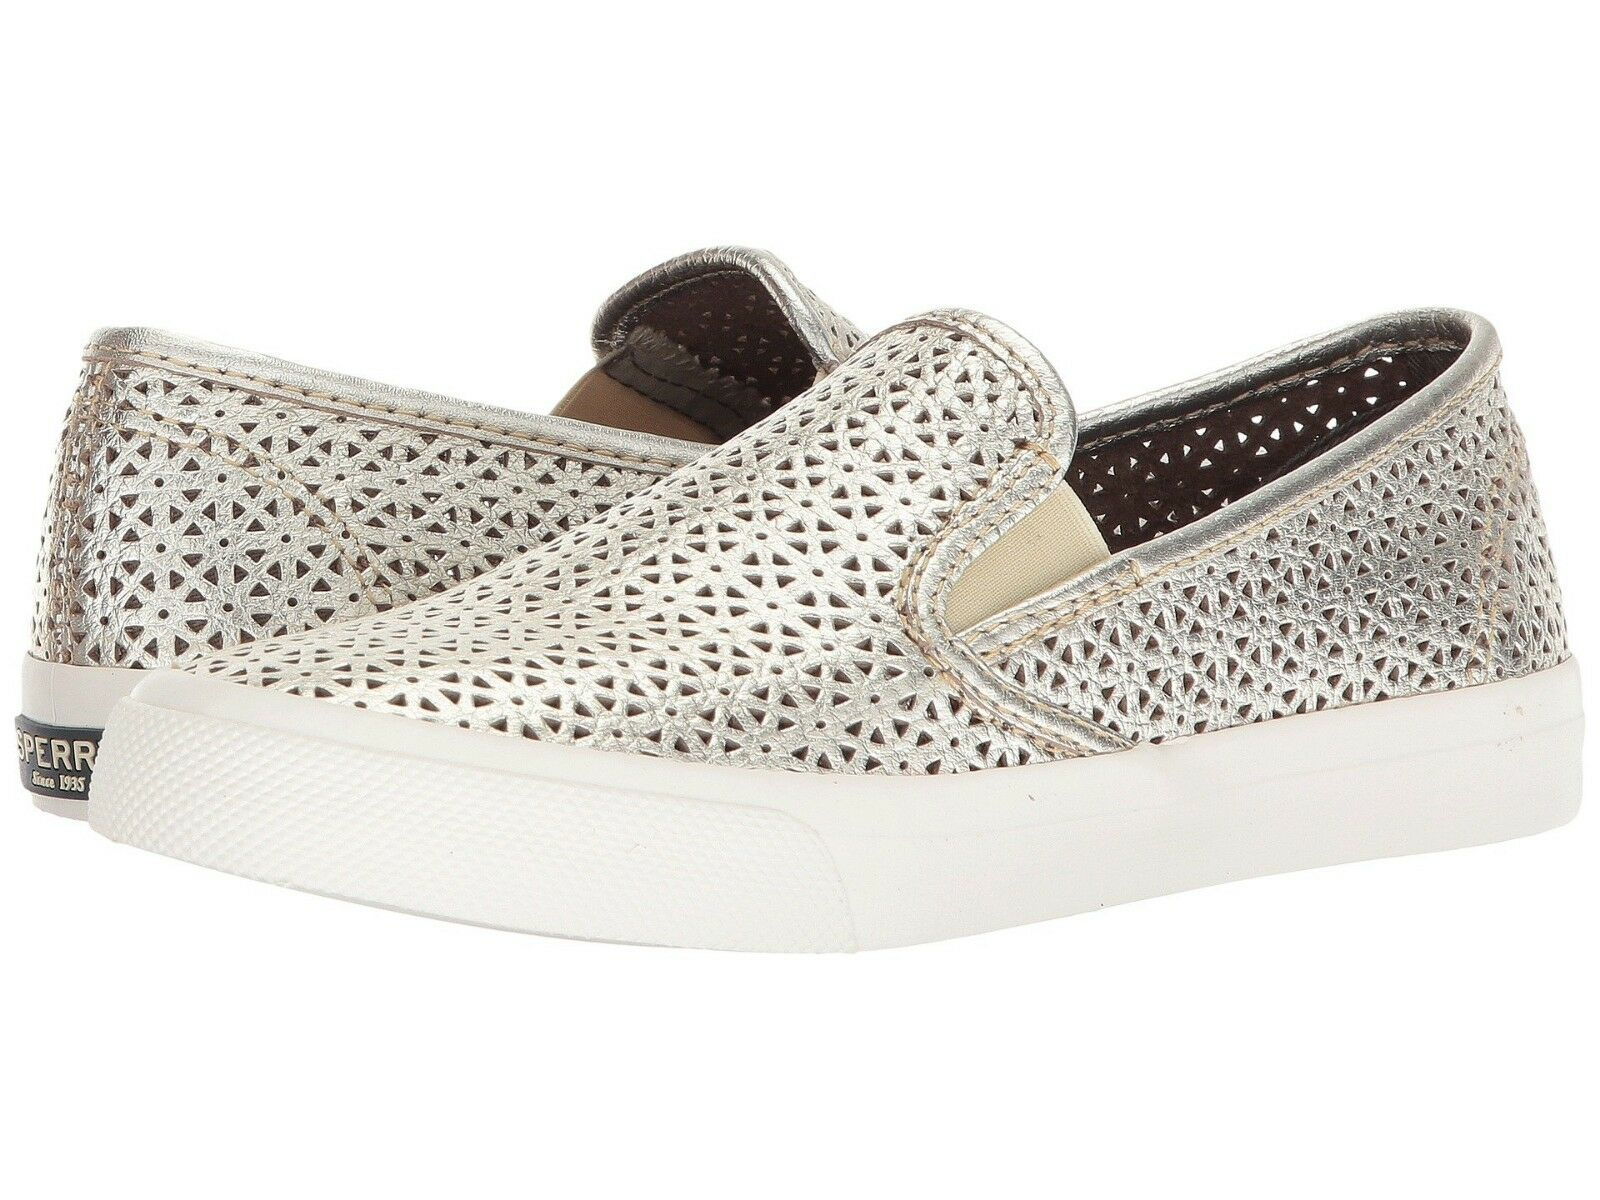 Sperry Seaside Nautical Perforated Platinum Leather Slip On Comfort Sneaker 8